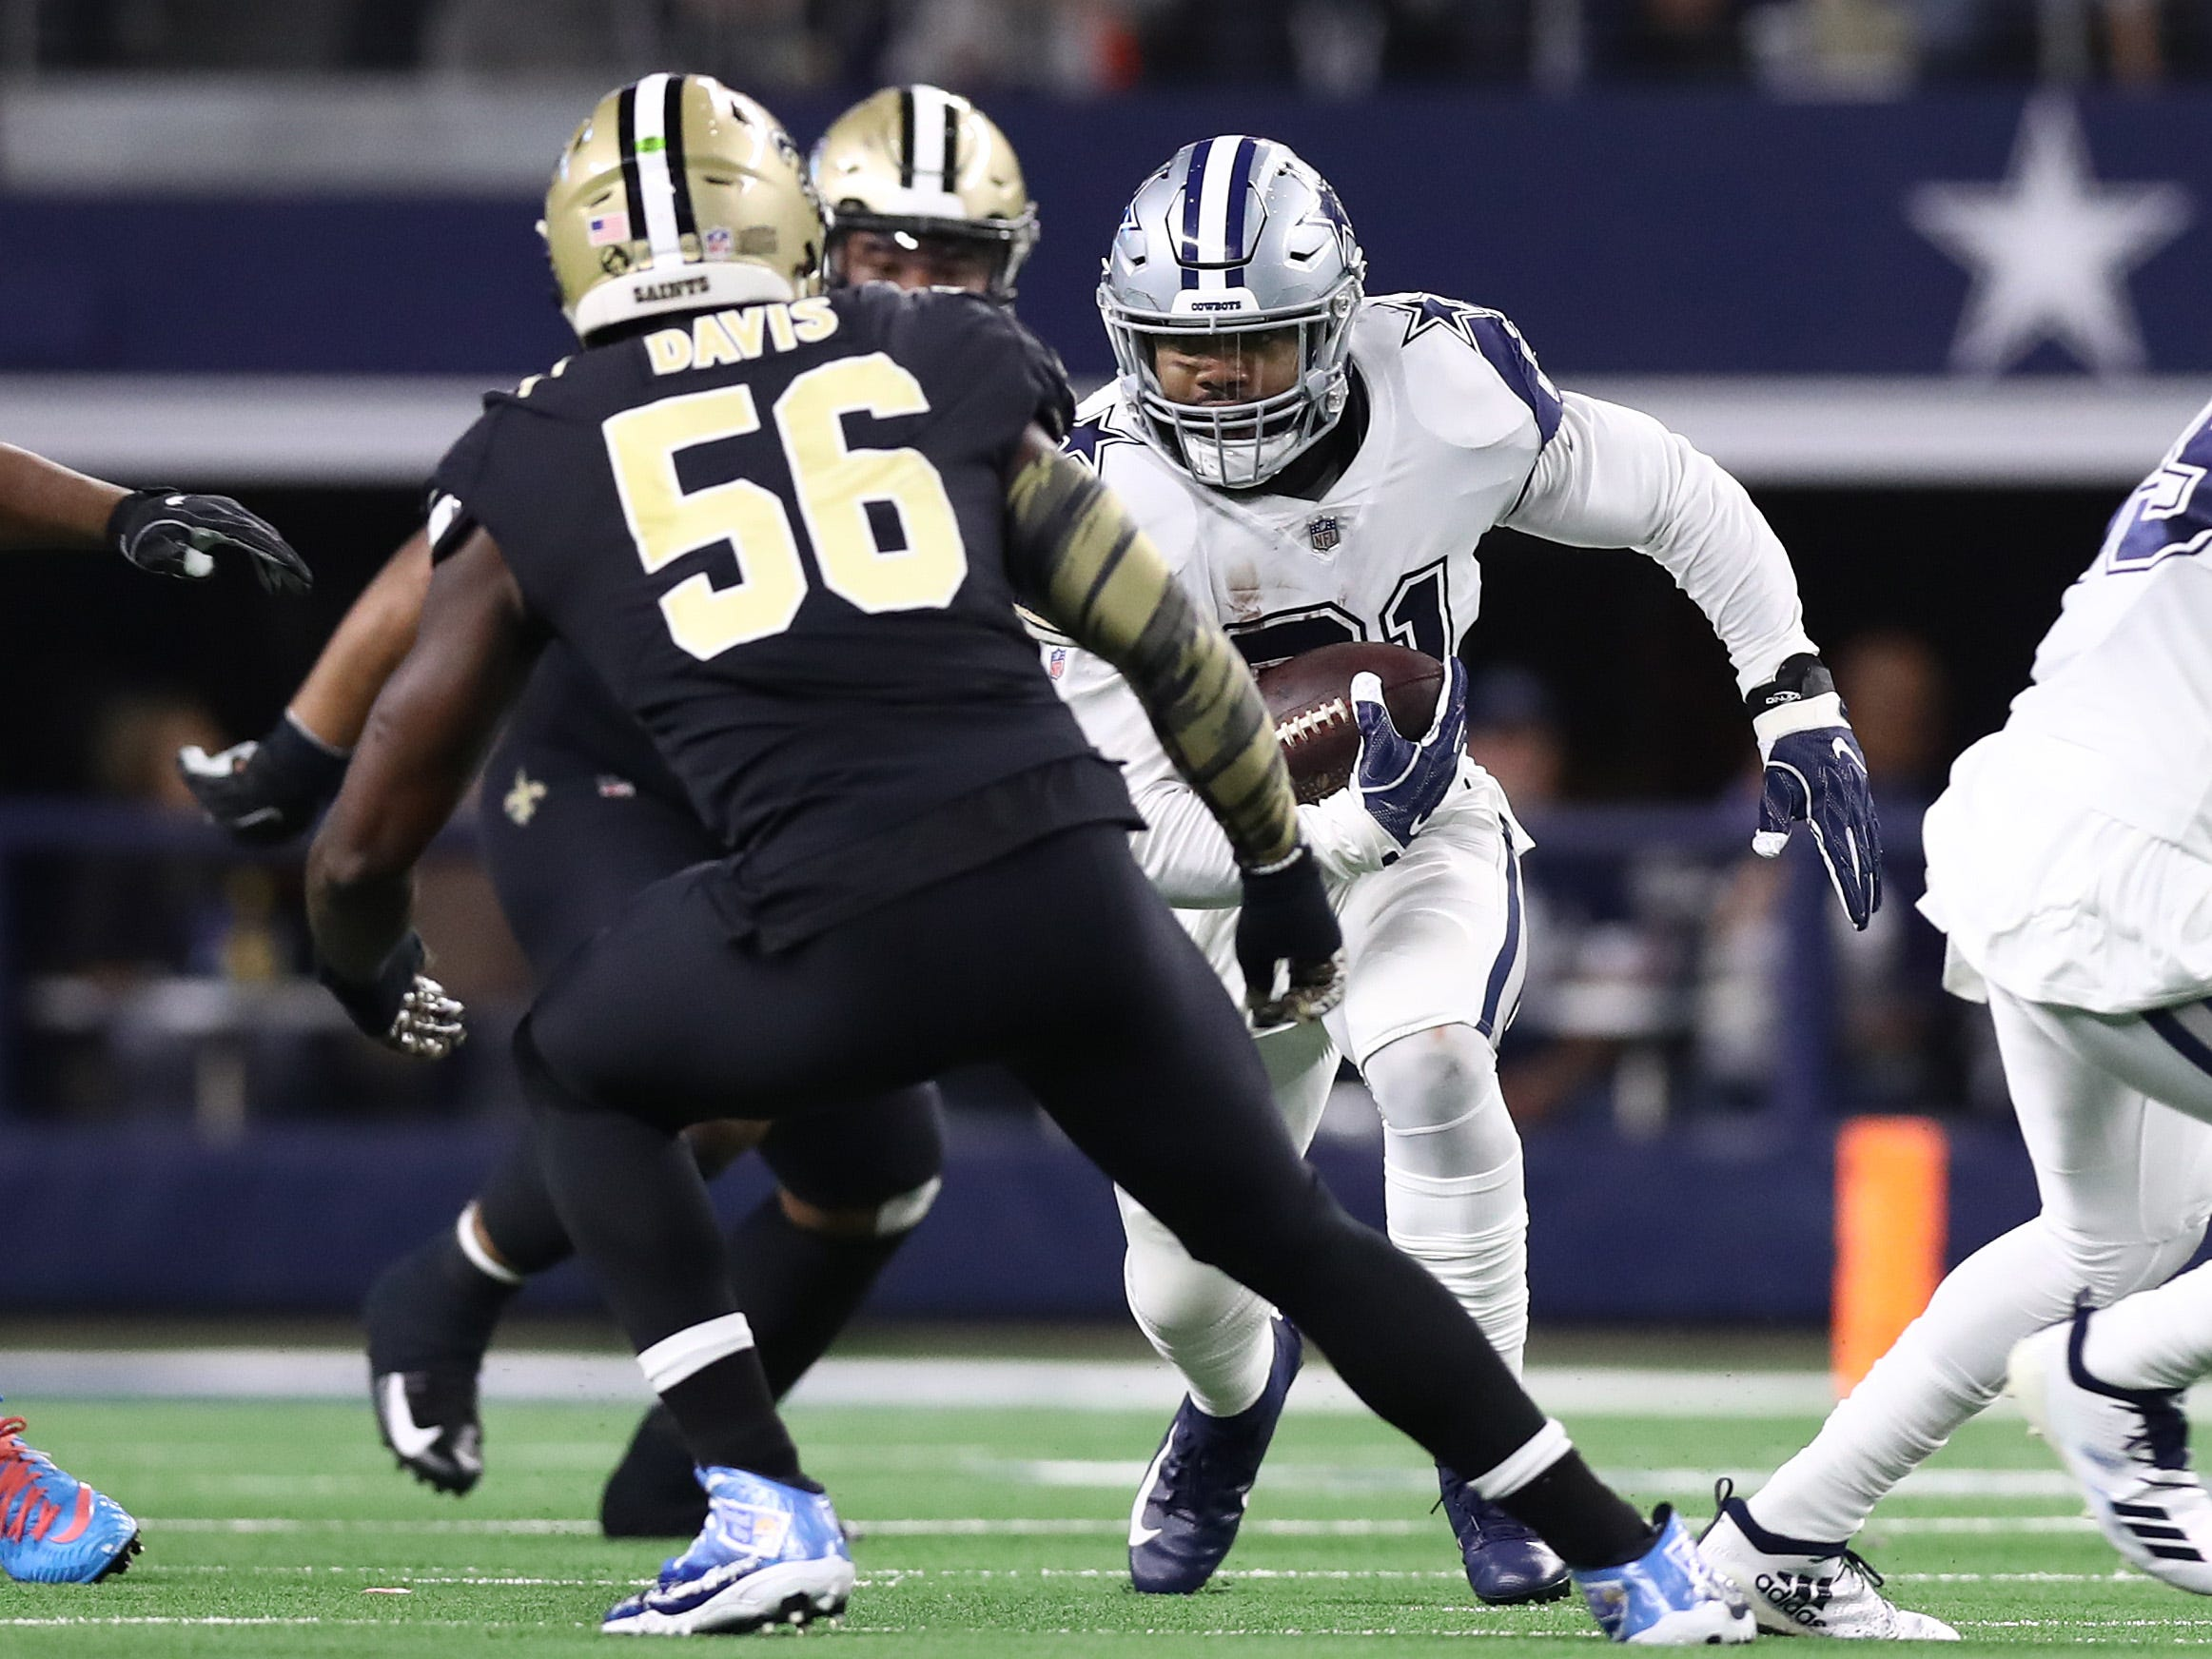 Dallas Cowboys running back Ezekiel Elliott runs with the ball against the New Orleans Saints in the first quarter at AT&T Stadium.